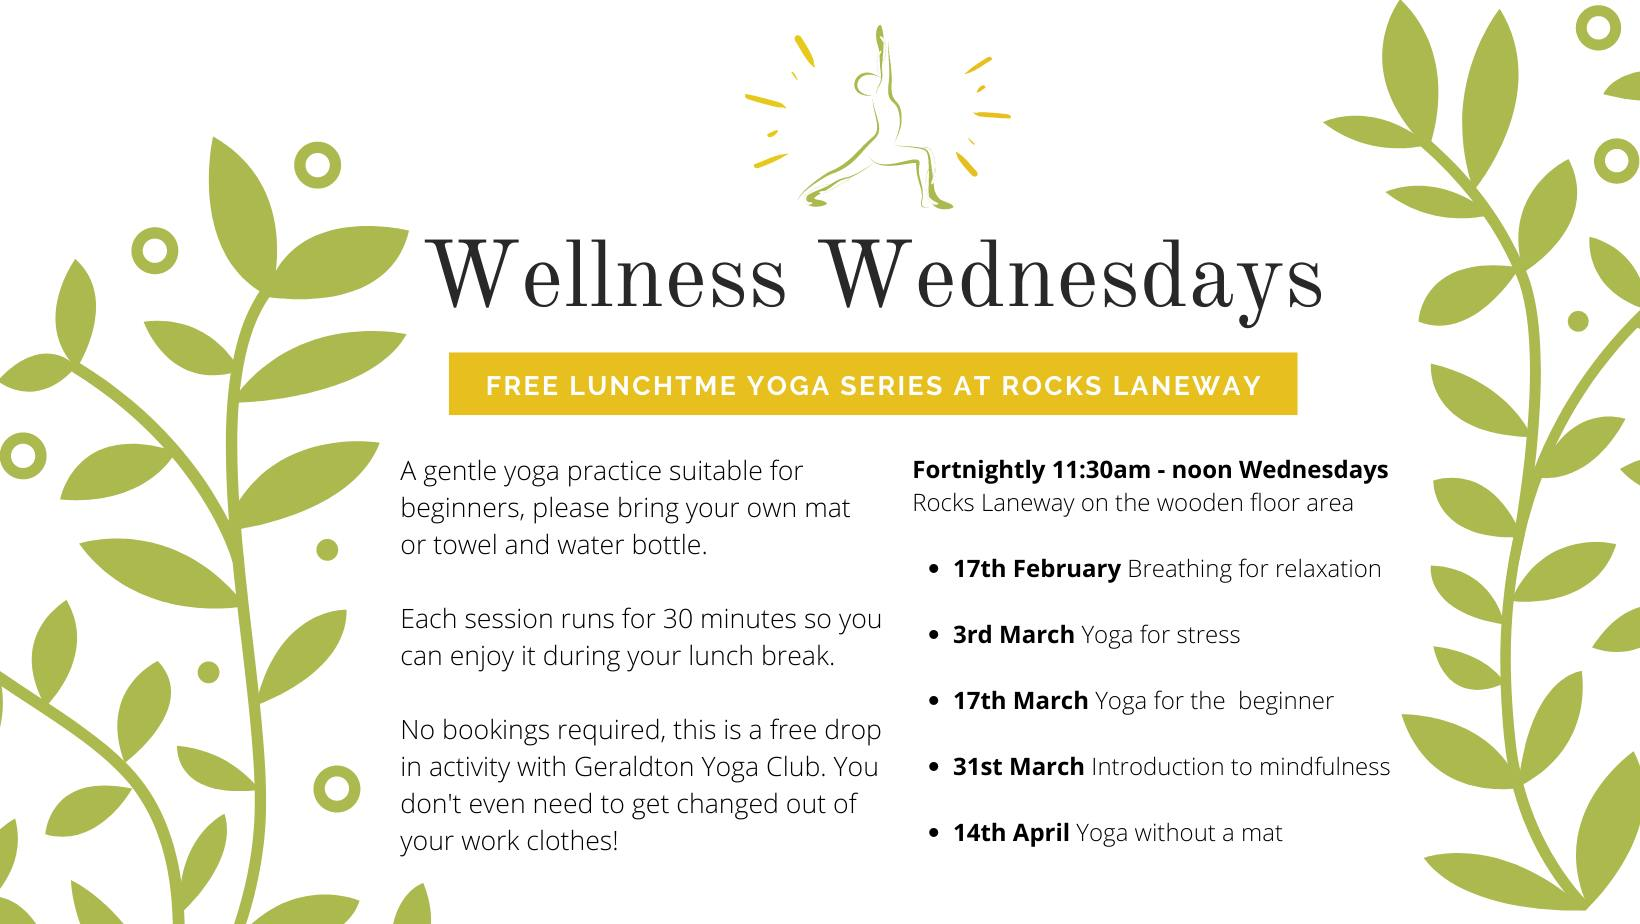 Wellness Wednesday flyer